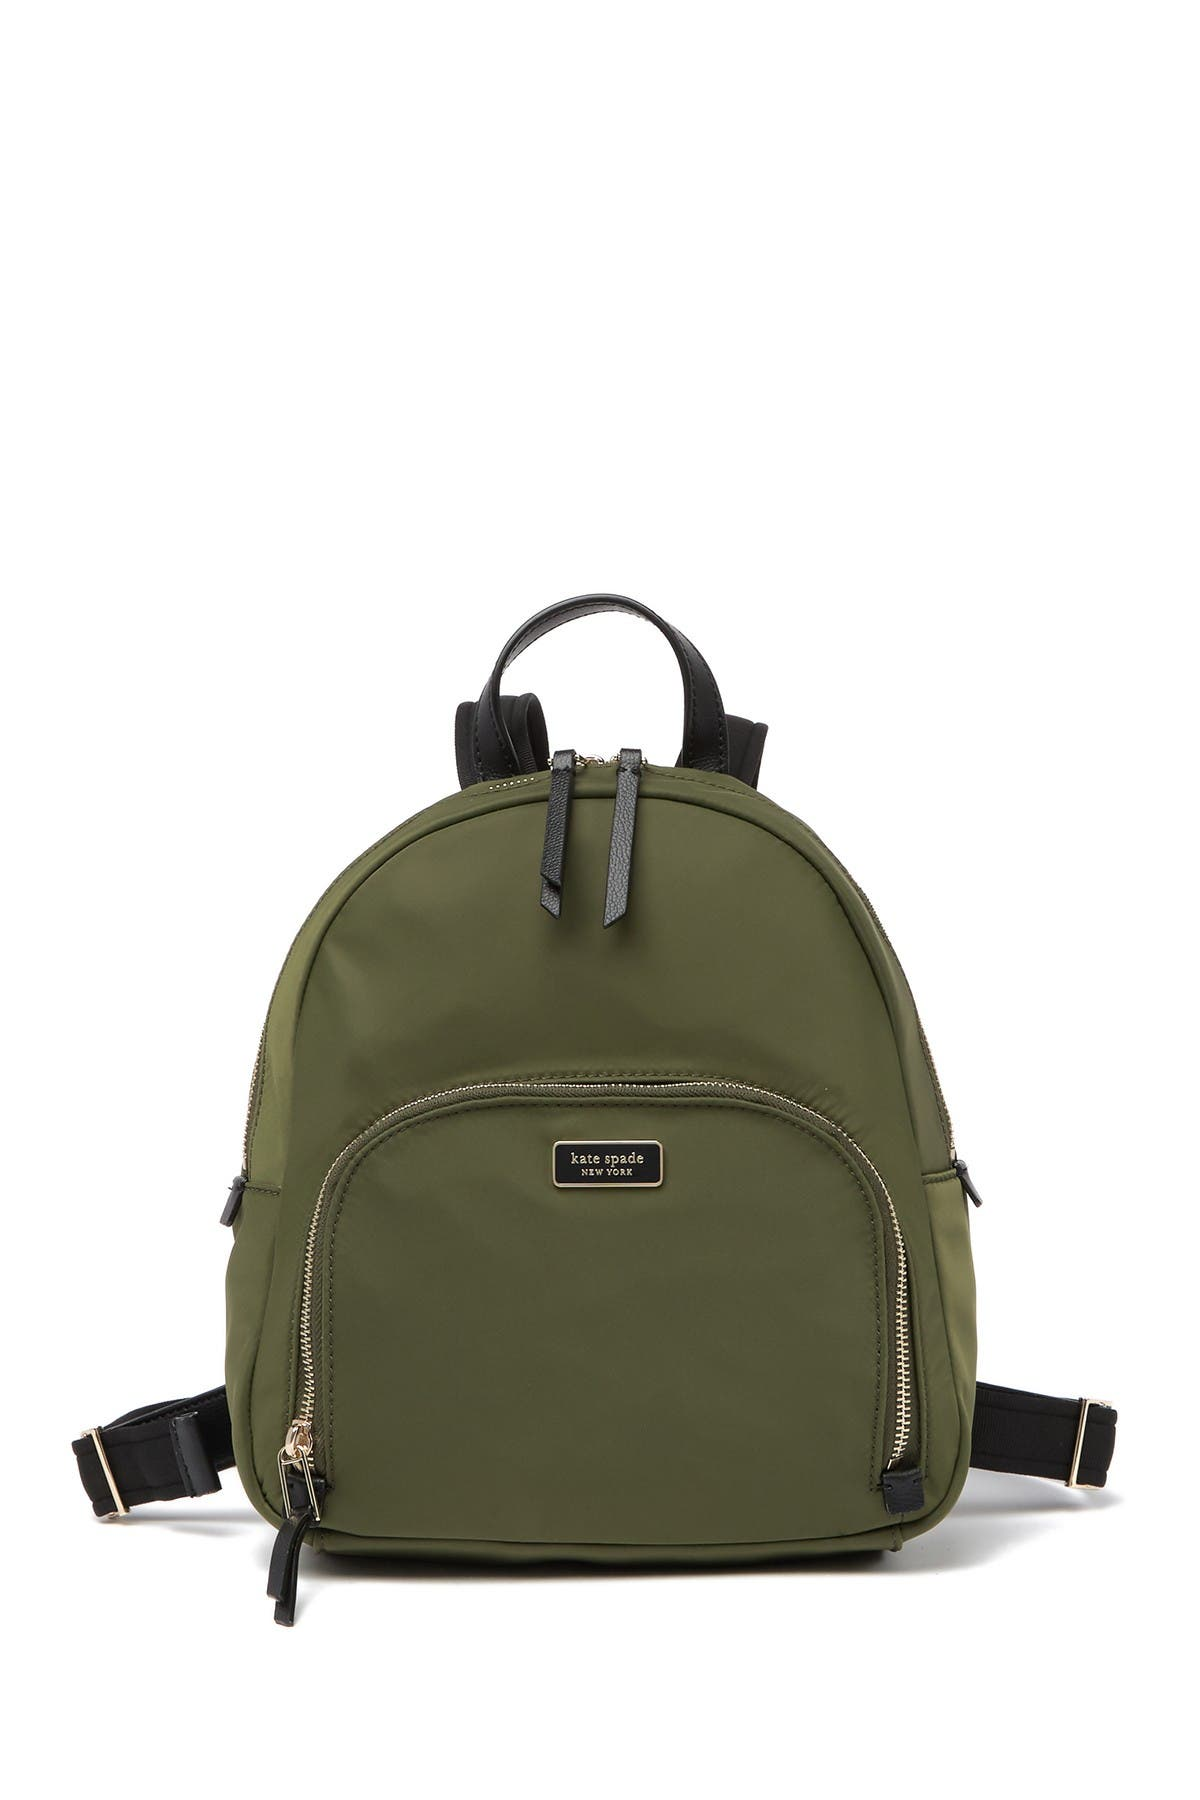 Image of kate spade new york dawn medium nylon backpack